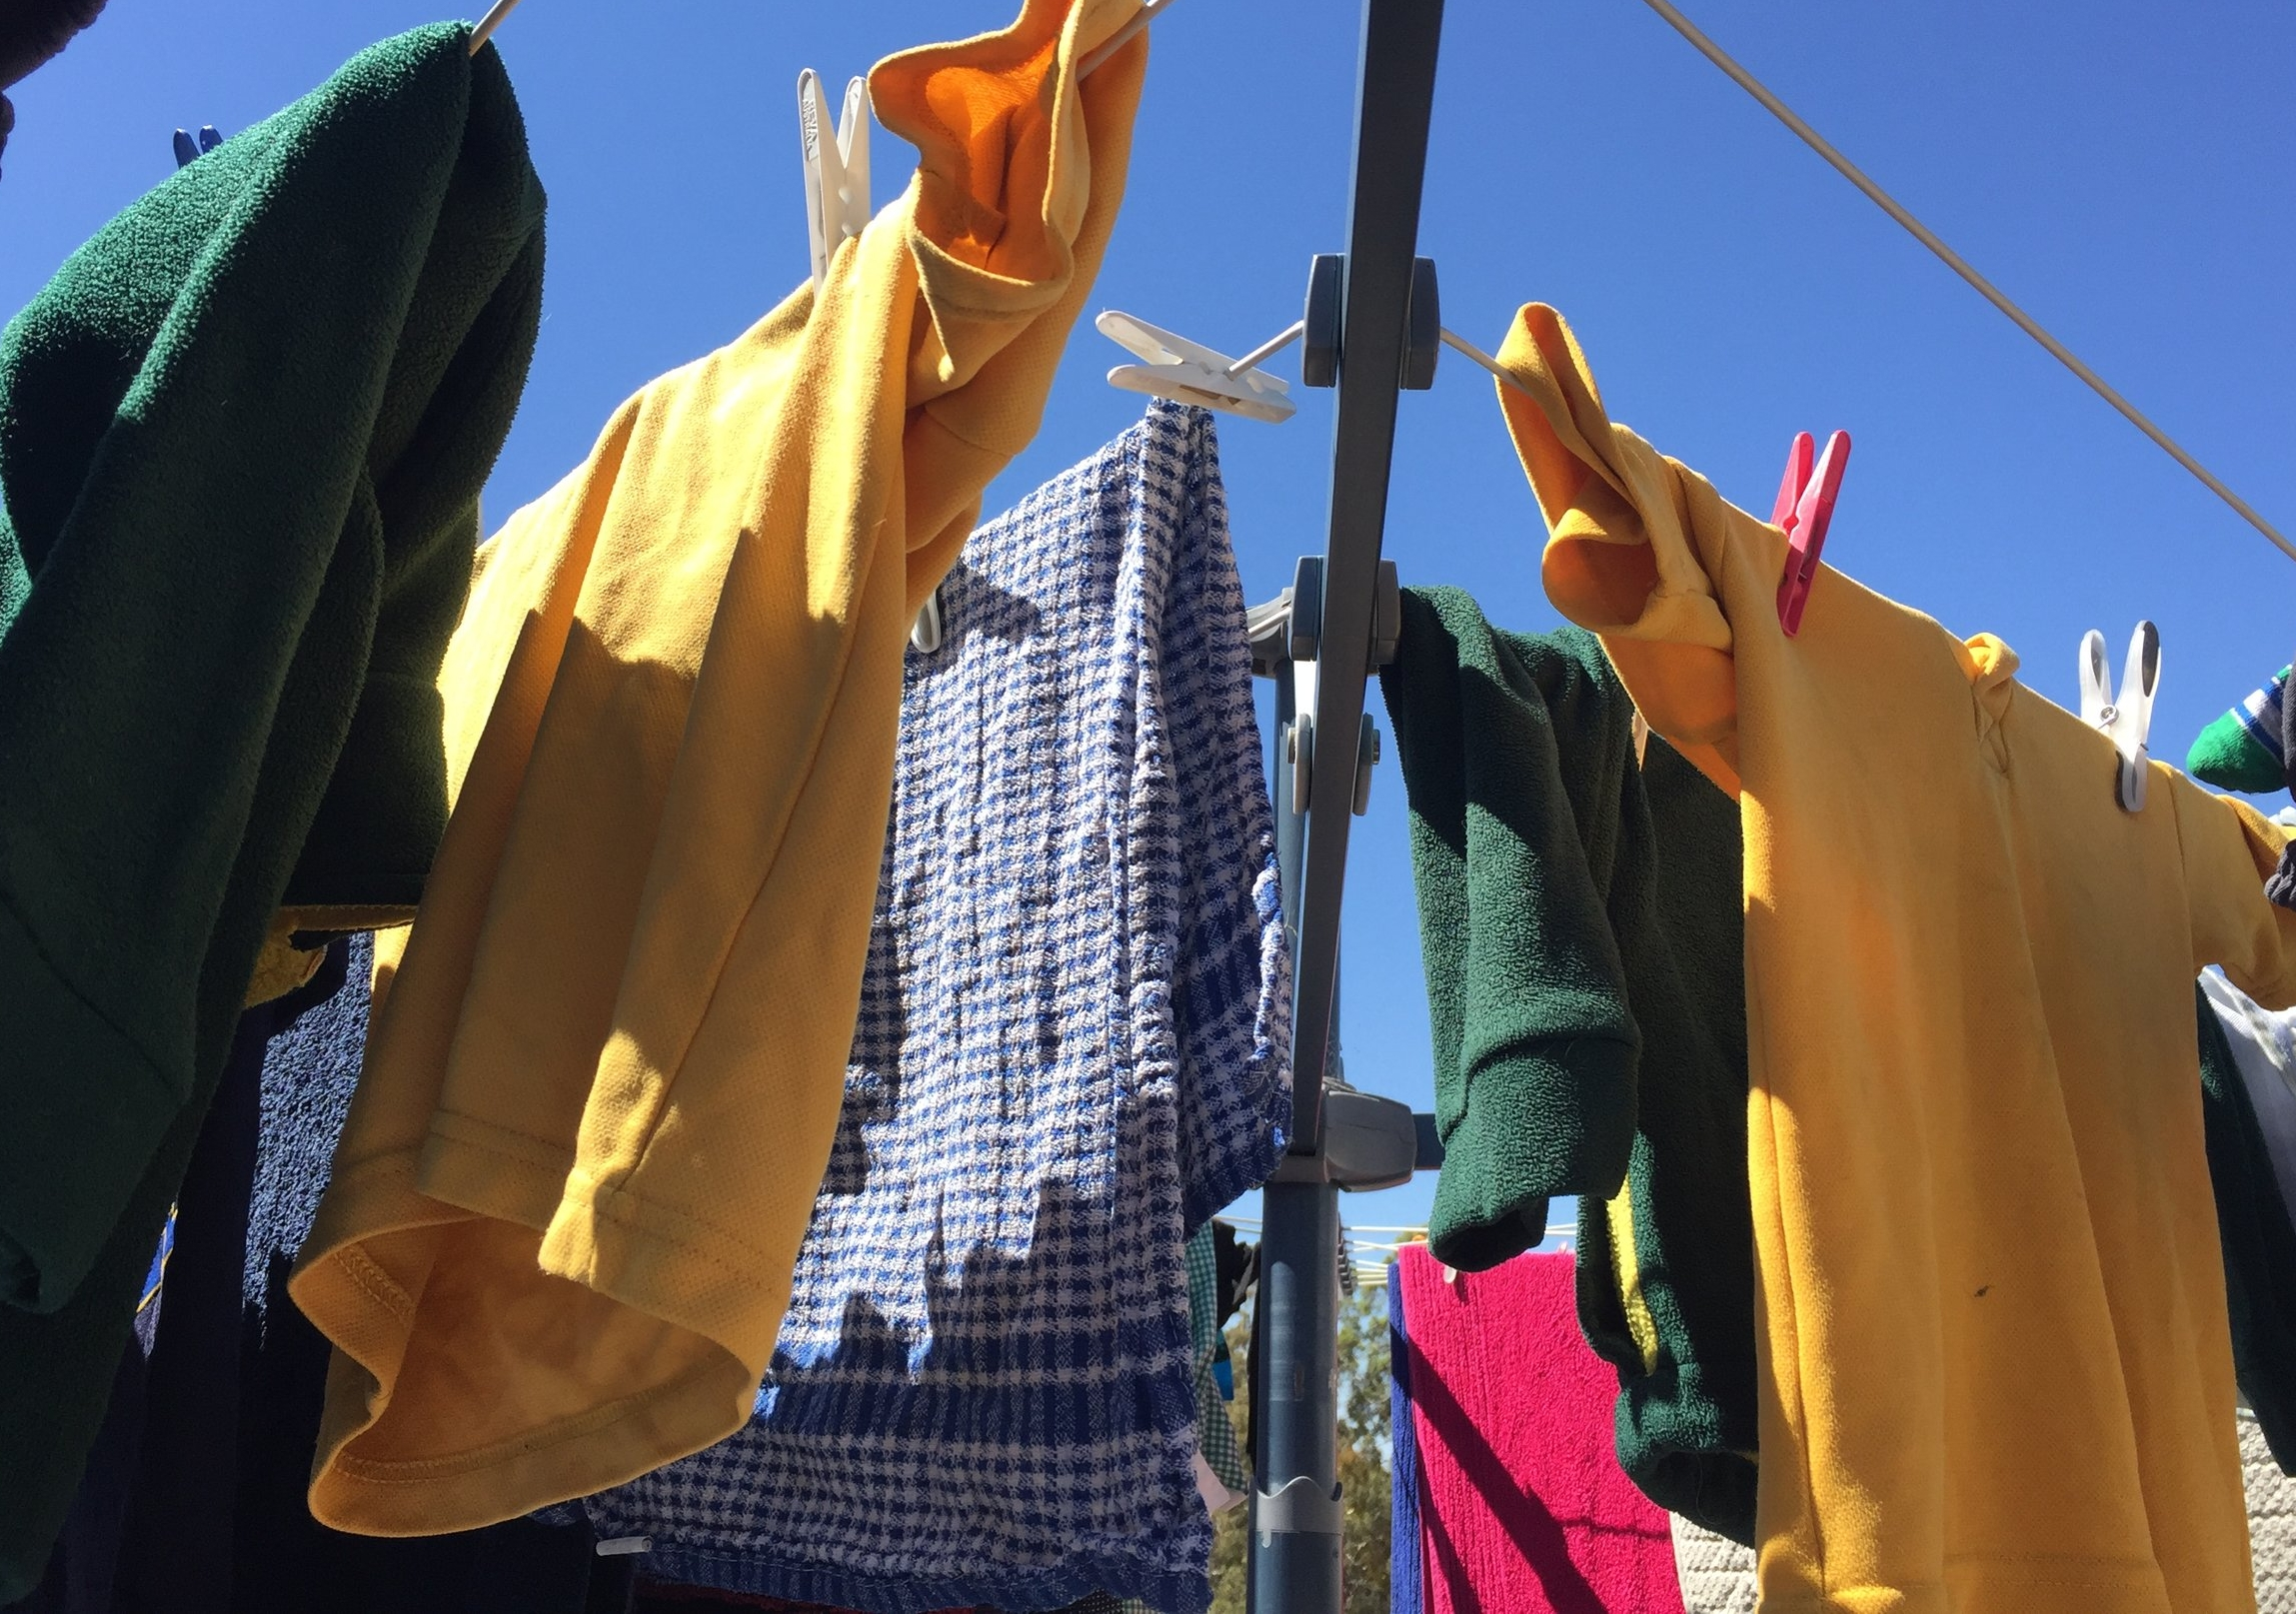 I took a break from doing the laundry to write about gender equality in the home. Here's my family's (clean) laundry, airing.